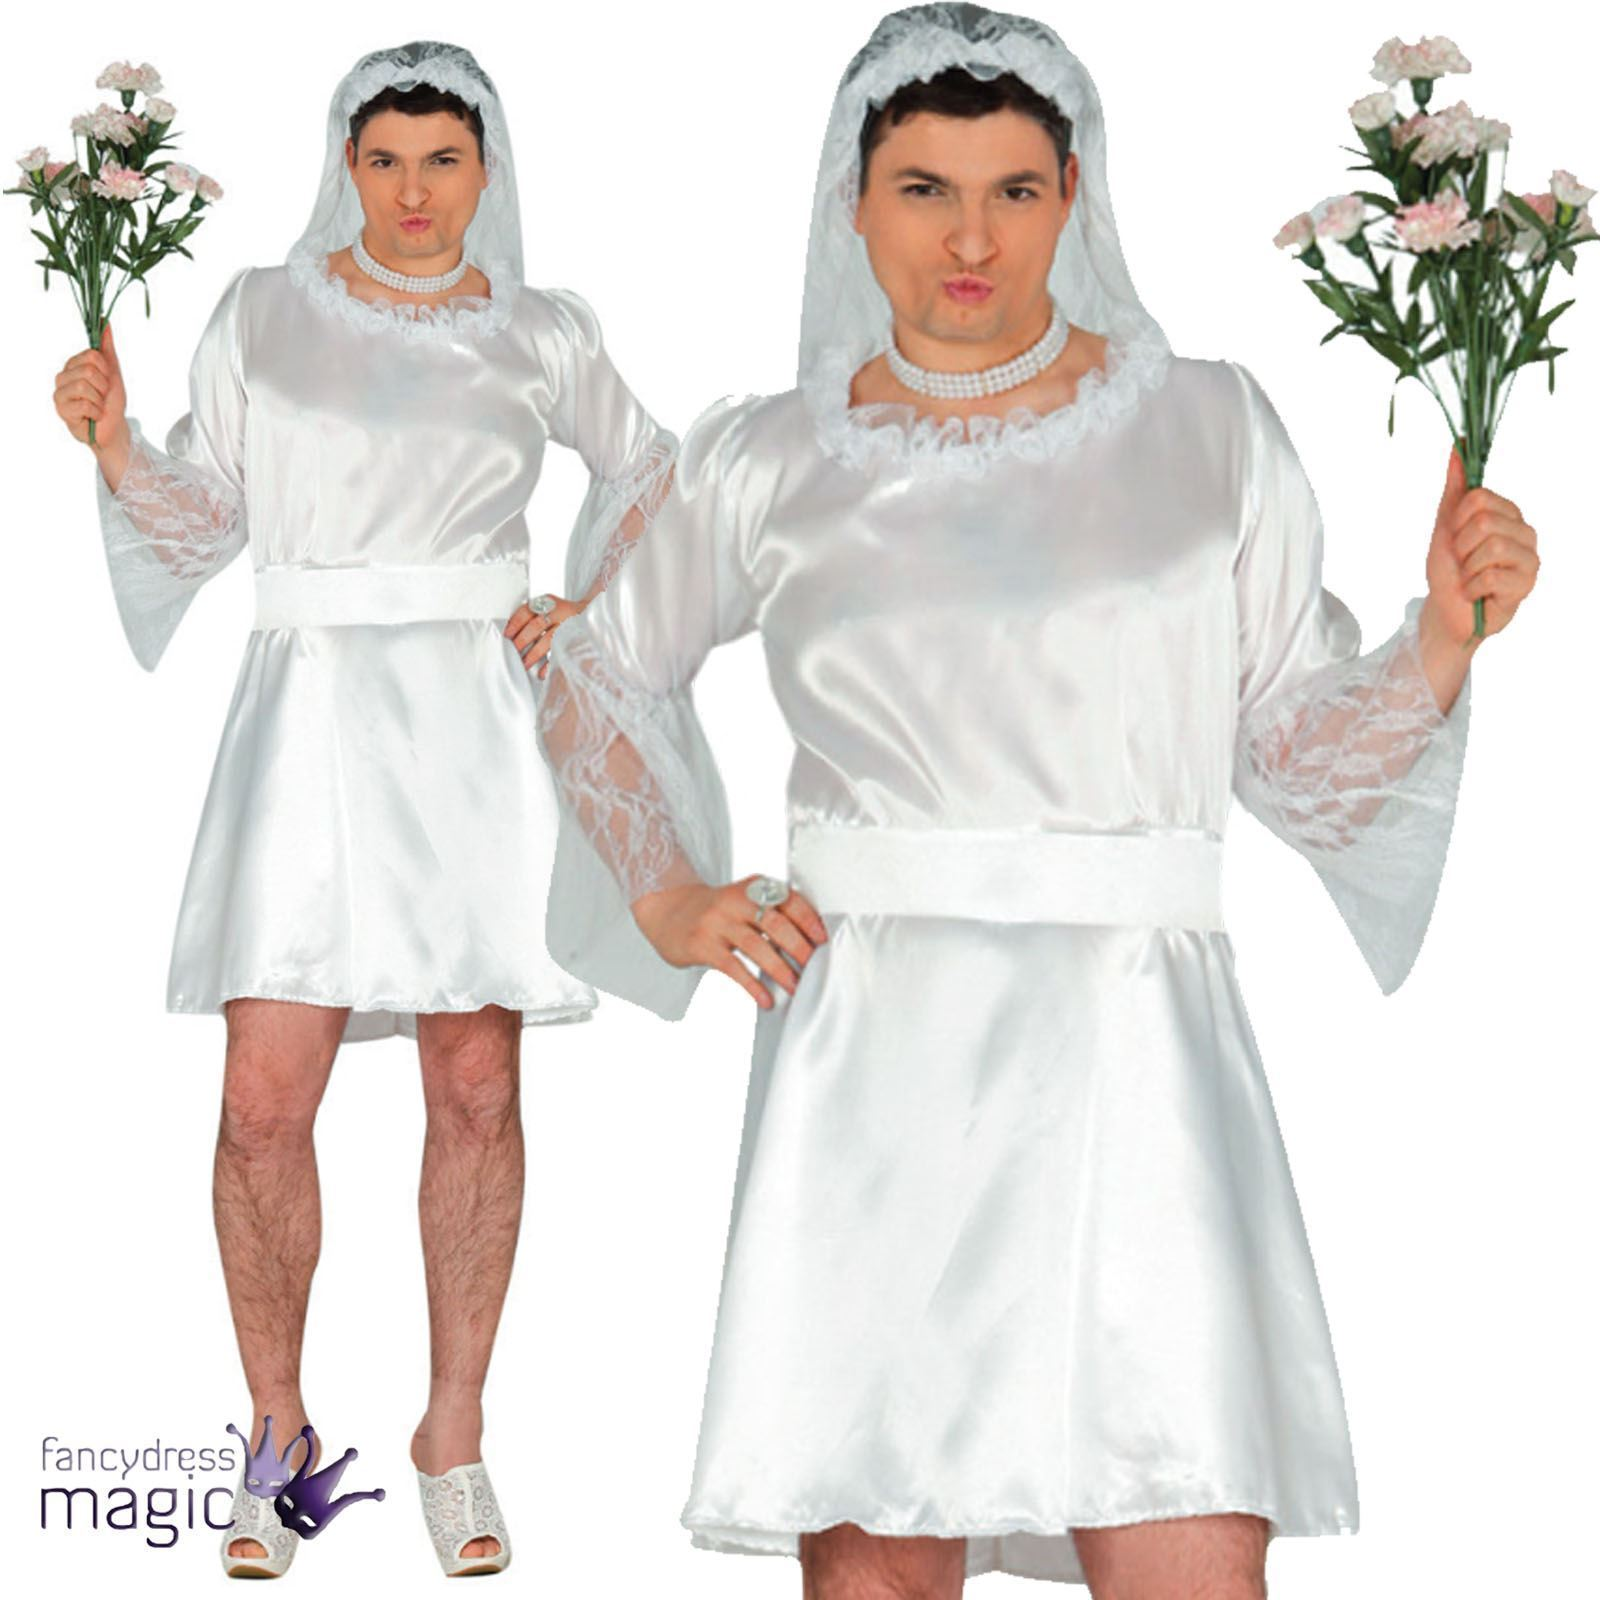 70b9912bd1 Details about Adult Mens Wedding Male Bride Stag Do Party Job Lot Fancy  Dress Costume Outfit